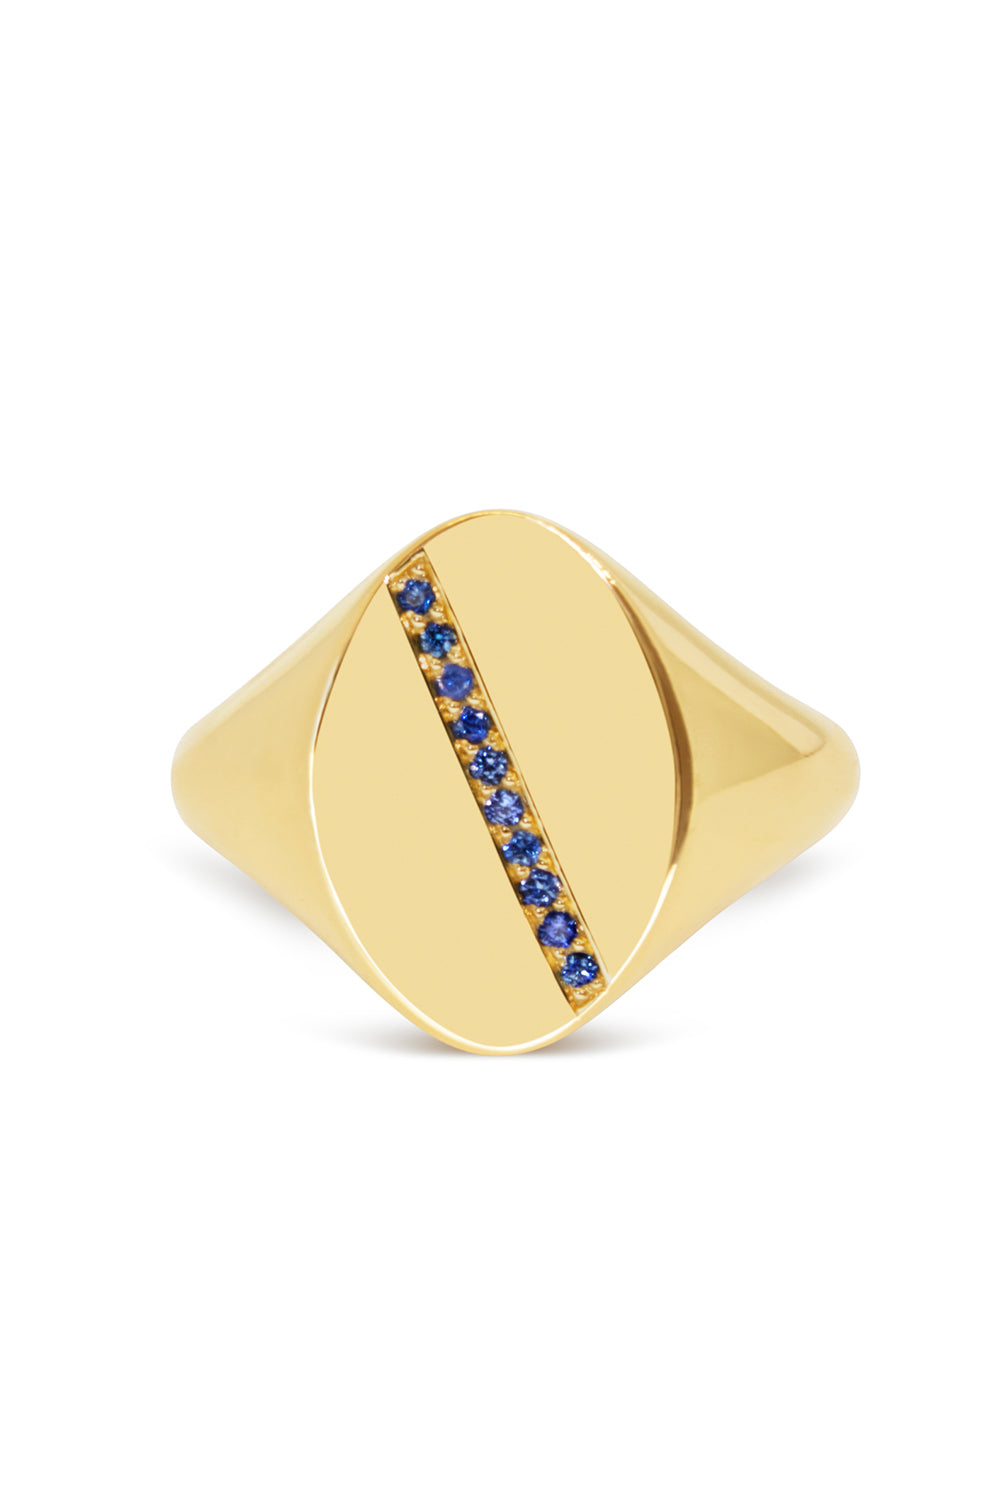 Diagonal Stripe Signet Ring with Blue Sapphires